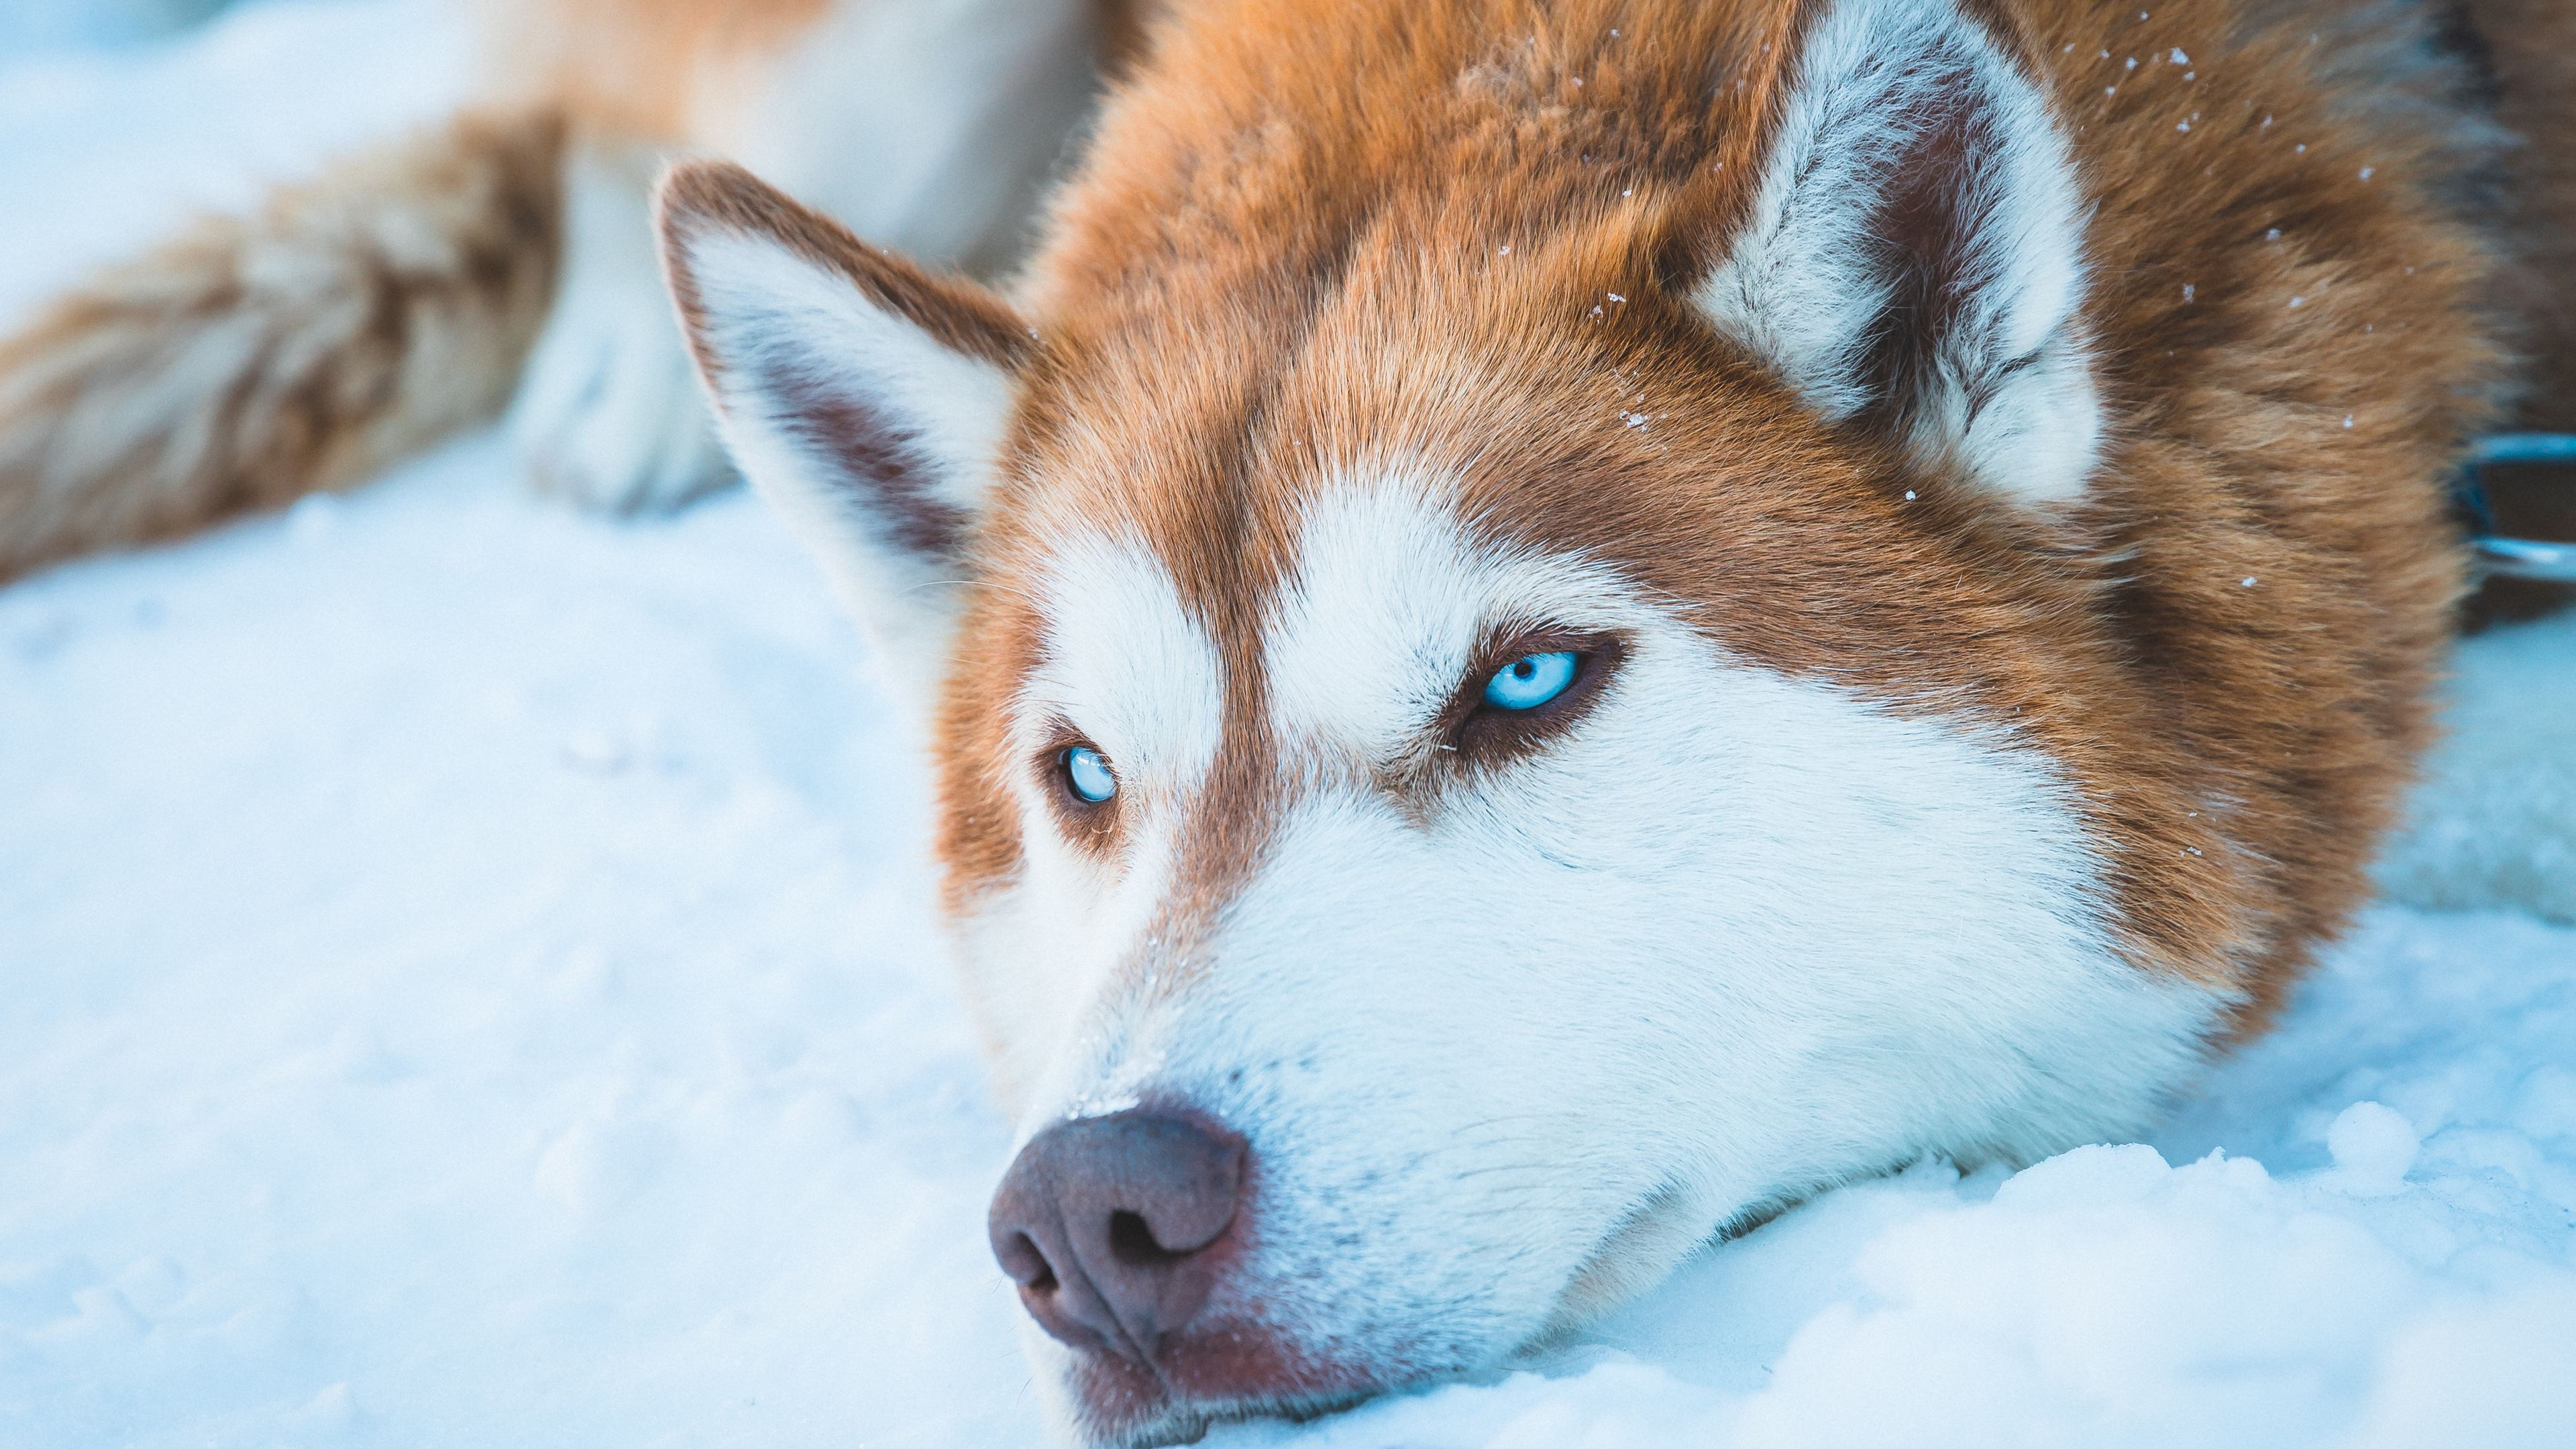 siberian husky in snow 4k 1546279473 - Siberian Husky In Snow 4k - siberian husky wallpapers, hd-wallpapers, dog wallpapers, animals wallpapers, 4k-wallpapers